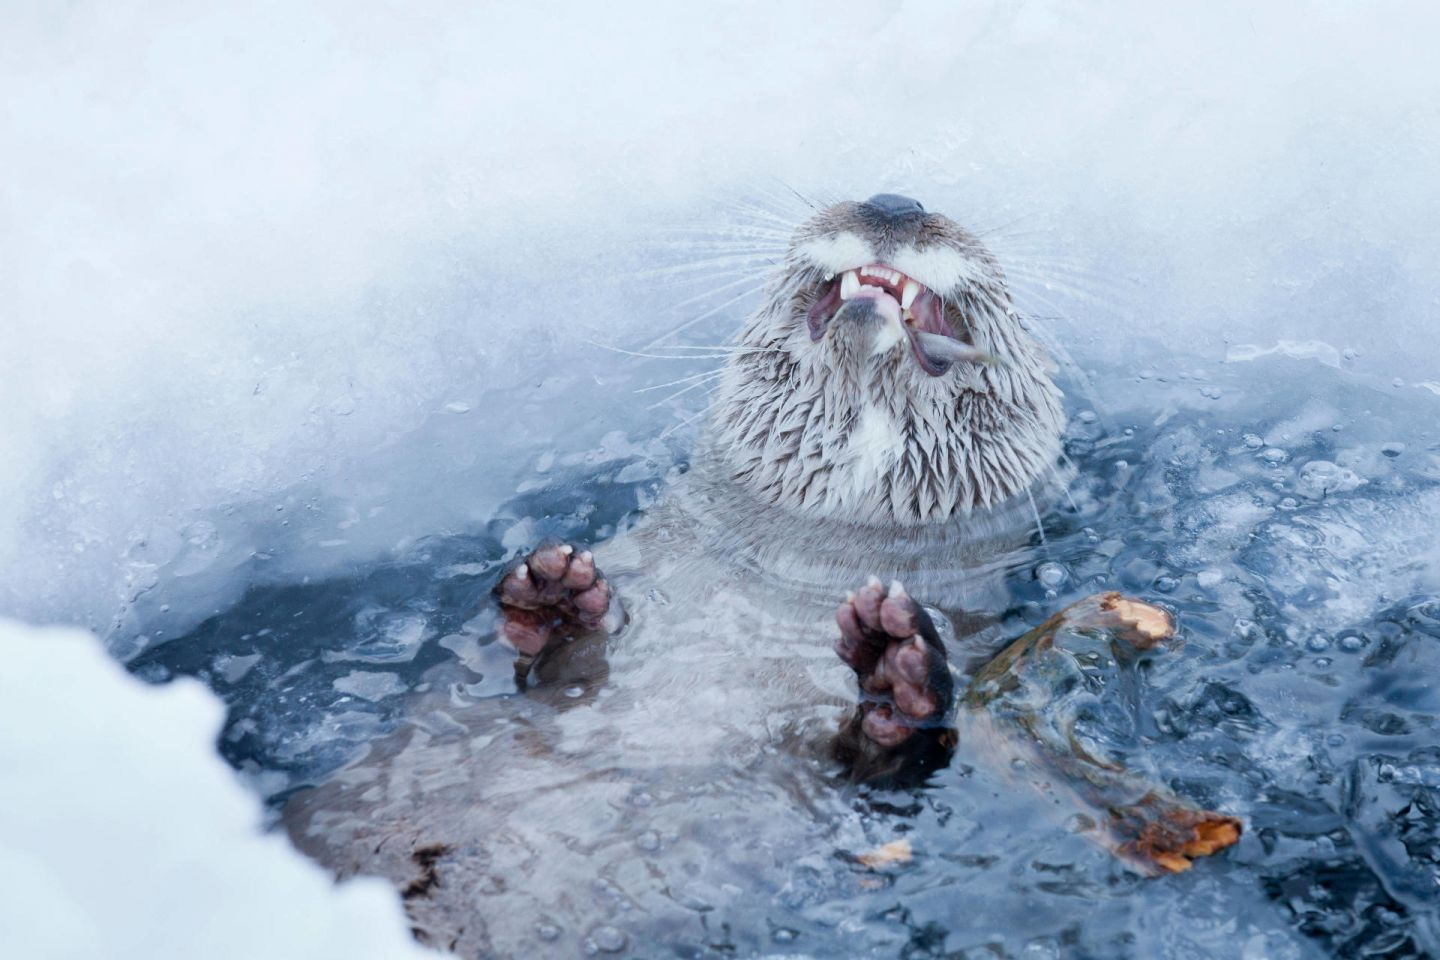 Happy otters, part of the Arctic wildlife you'll find in Finnish Lapland